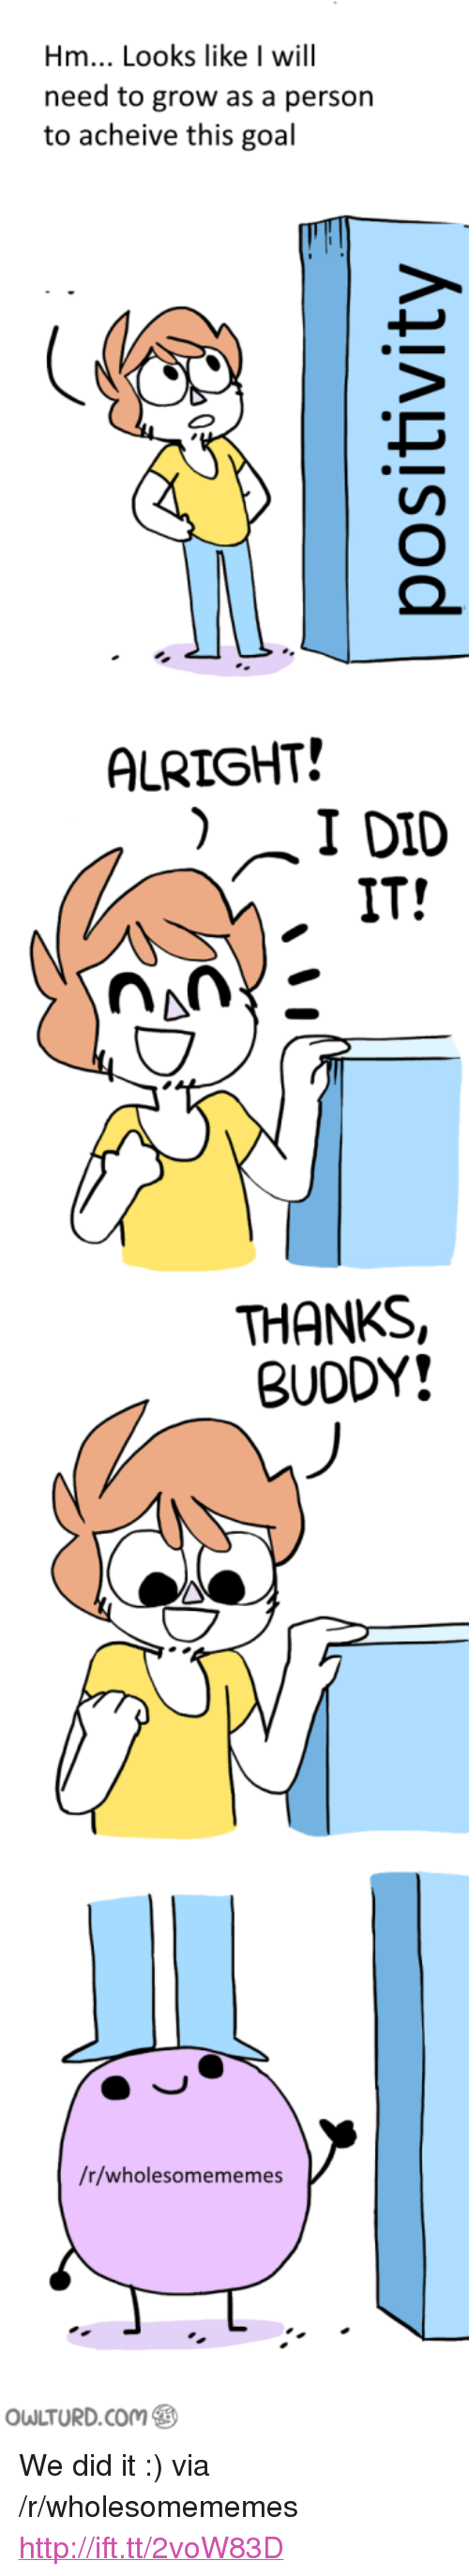 """Thanks Buddy: Hm... Looks like I will  need to grow as a person  to acheive this goal  ALRIGHT!  IT!  THANKS,  BUDDY!  /r/wholesomememes  Ou LTURD.com <p>We did it :) via /r/wholesomememes <a href=""""http://ift.tt/2voW83D"""">http://ift.tt/2voW83D</a></p>"""